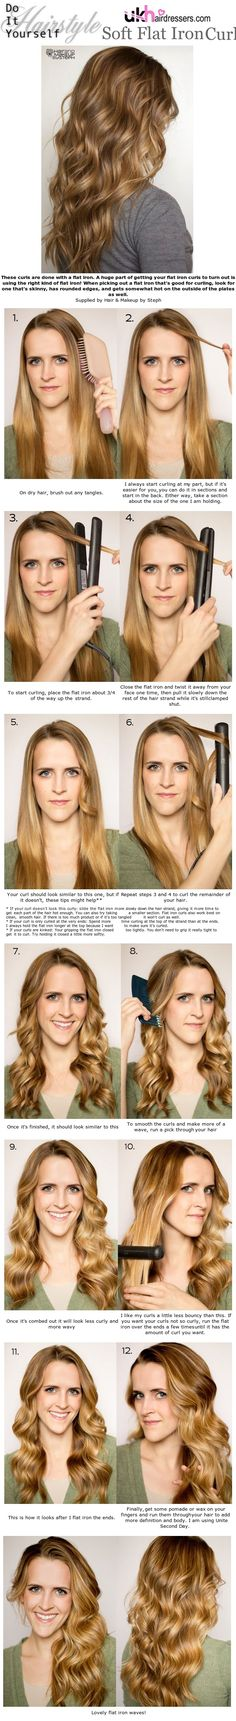 DIY Styles - Soft Flat Iron Curls #ukhairdressers Loads more hairstyle inspiration www.ukhairdressers.com